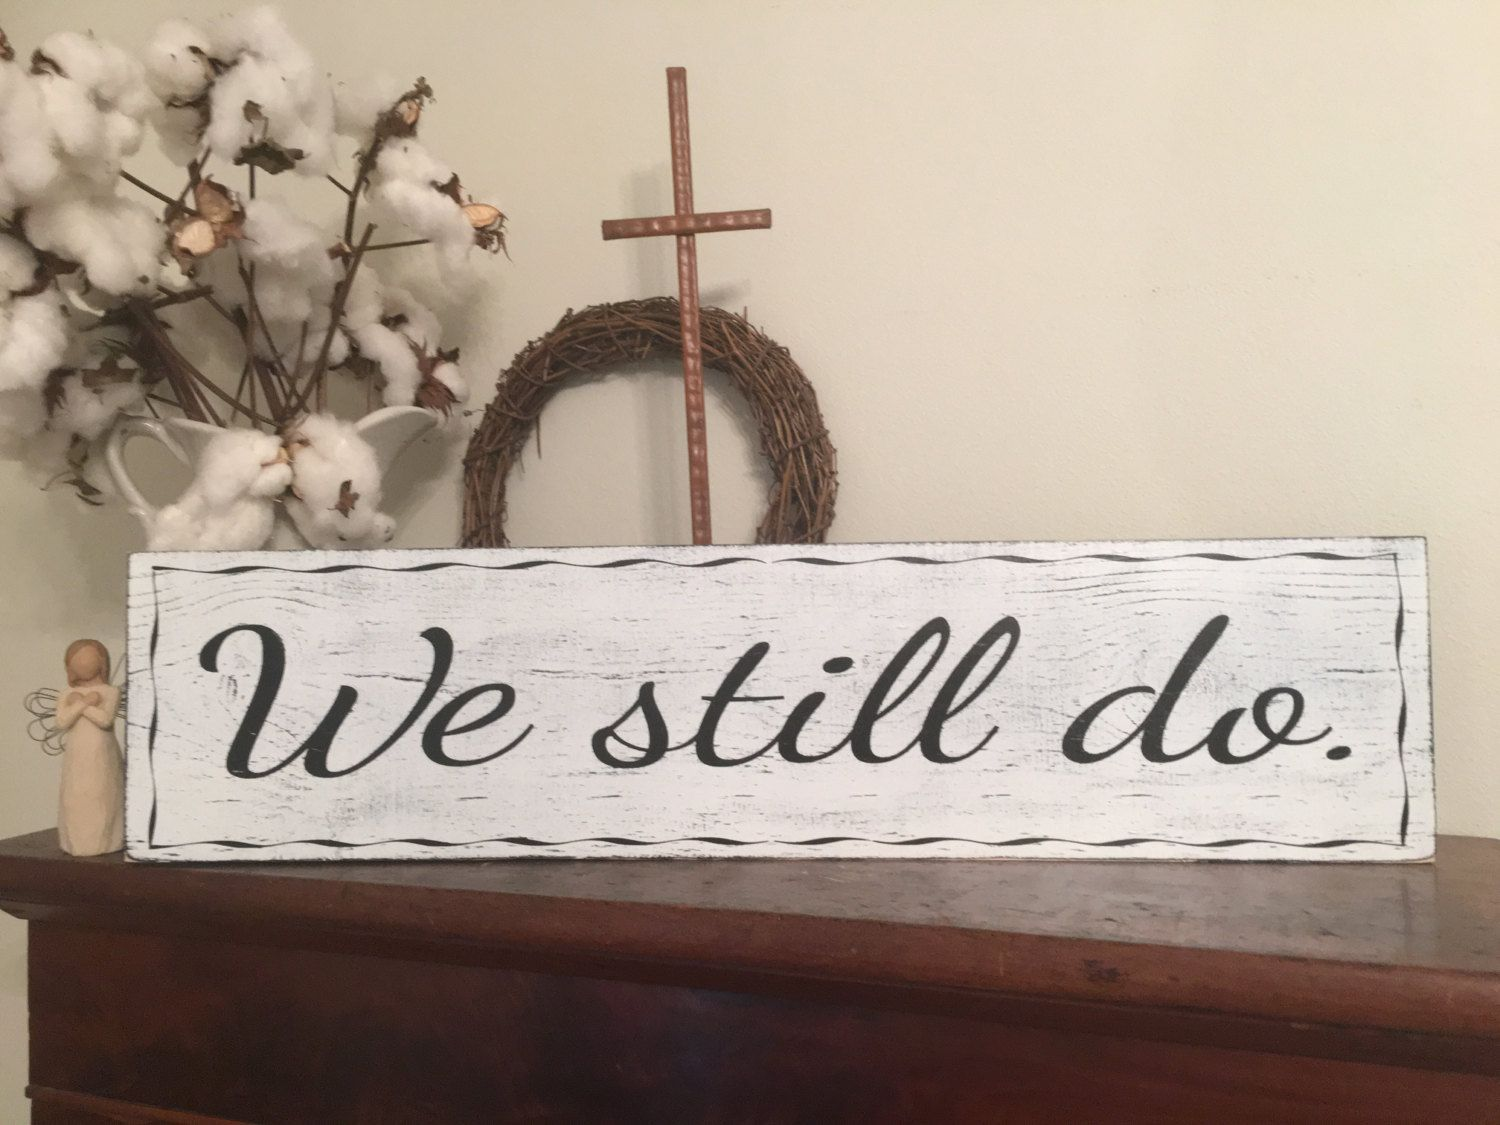 Wall Signs Decor Prepossessing We Still Do Sign Fixer Upper Inspired Signs30X725 Rustic Wood Design Decoration